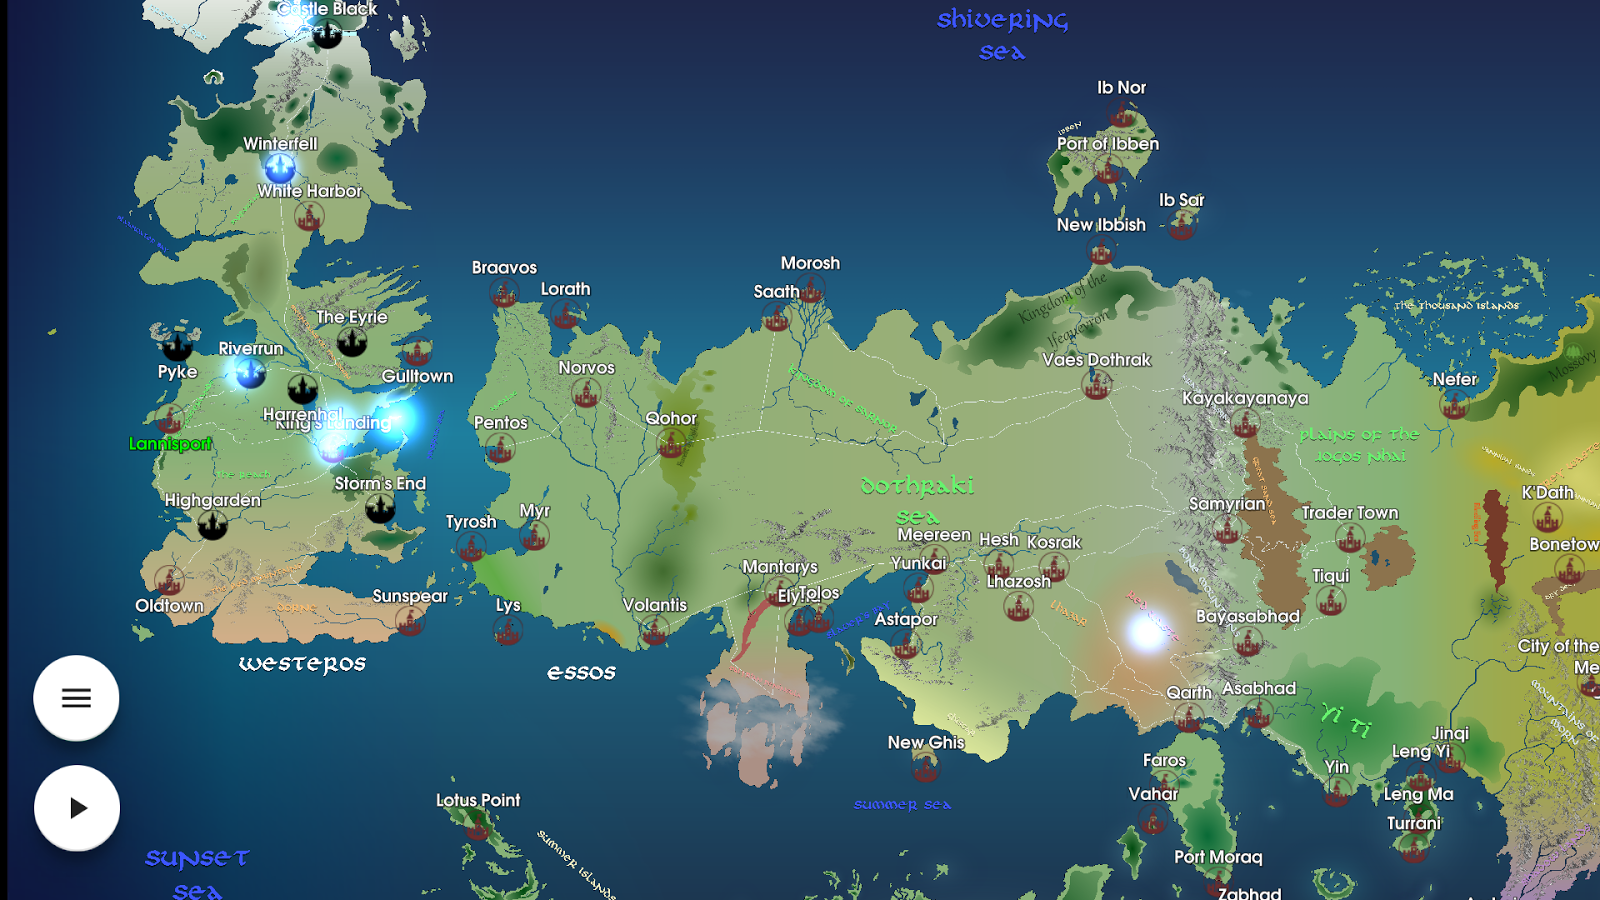 Map for Game of Thrones Android Apps on Google Play